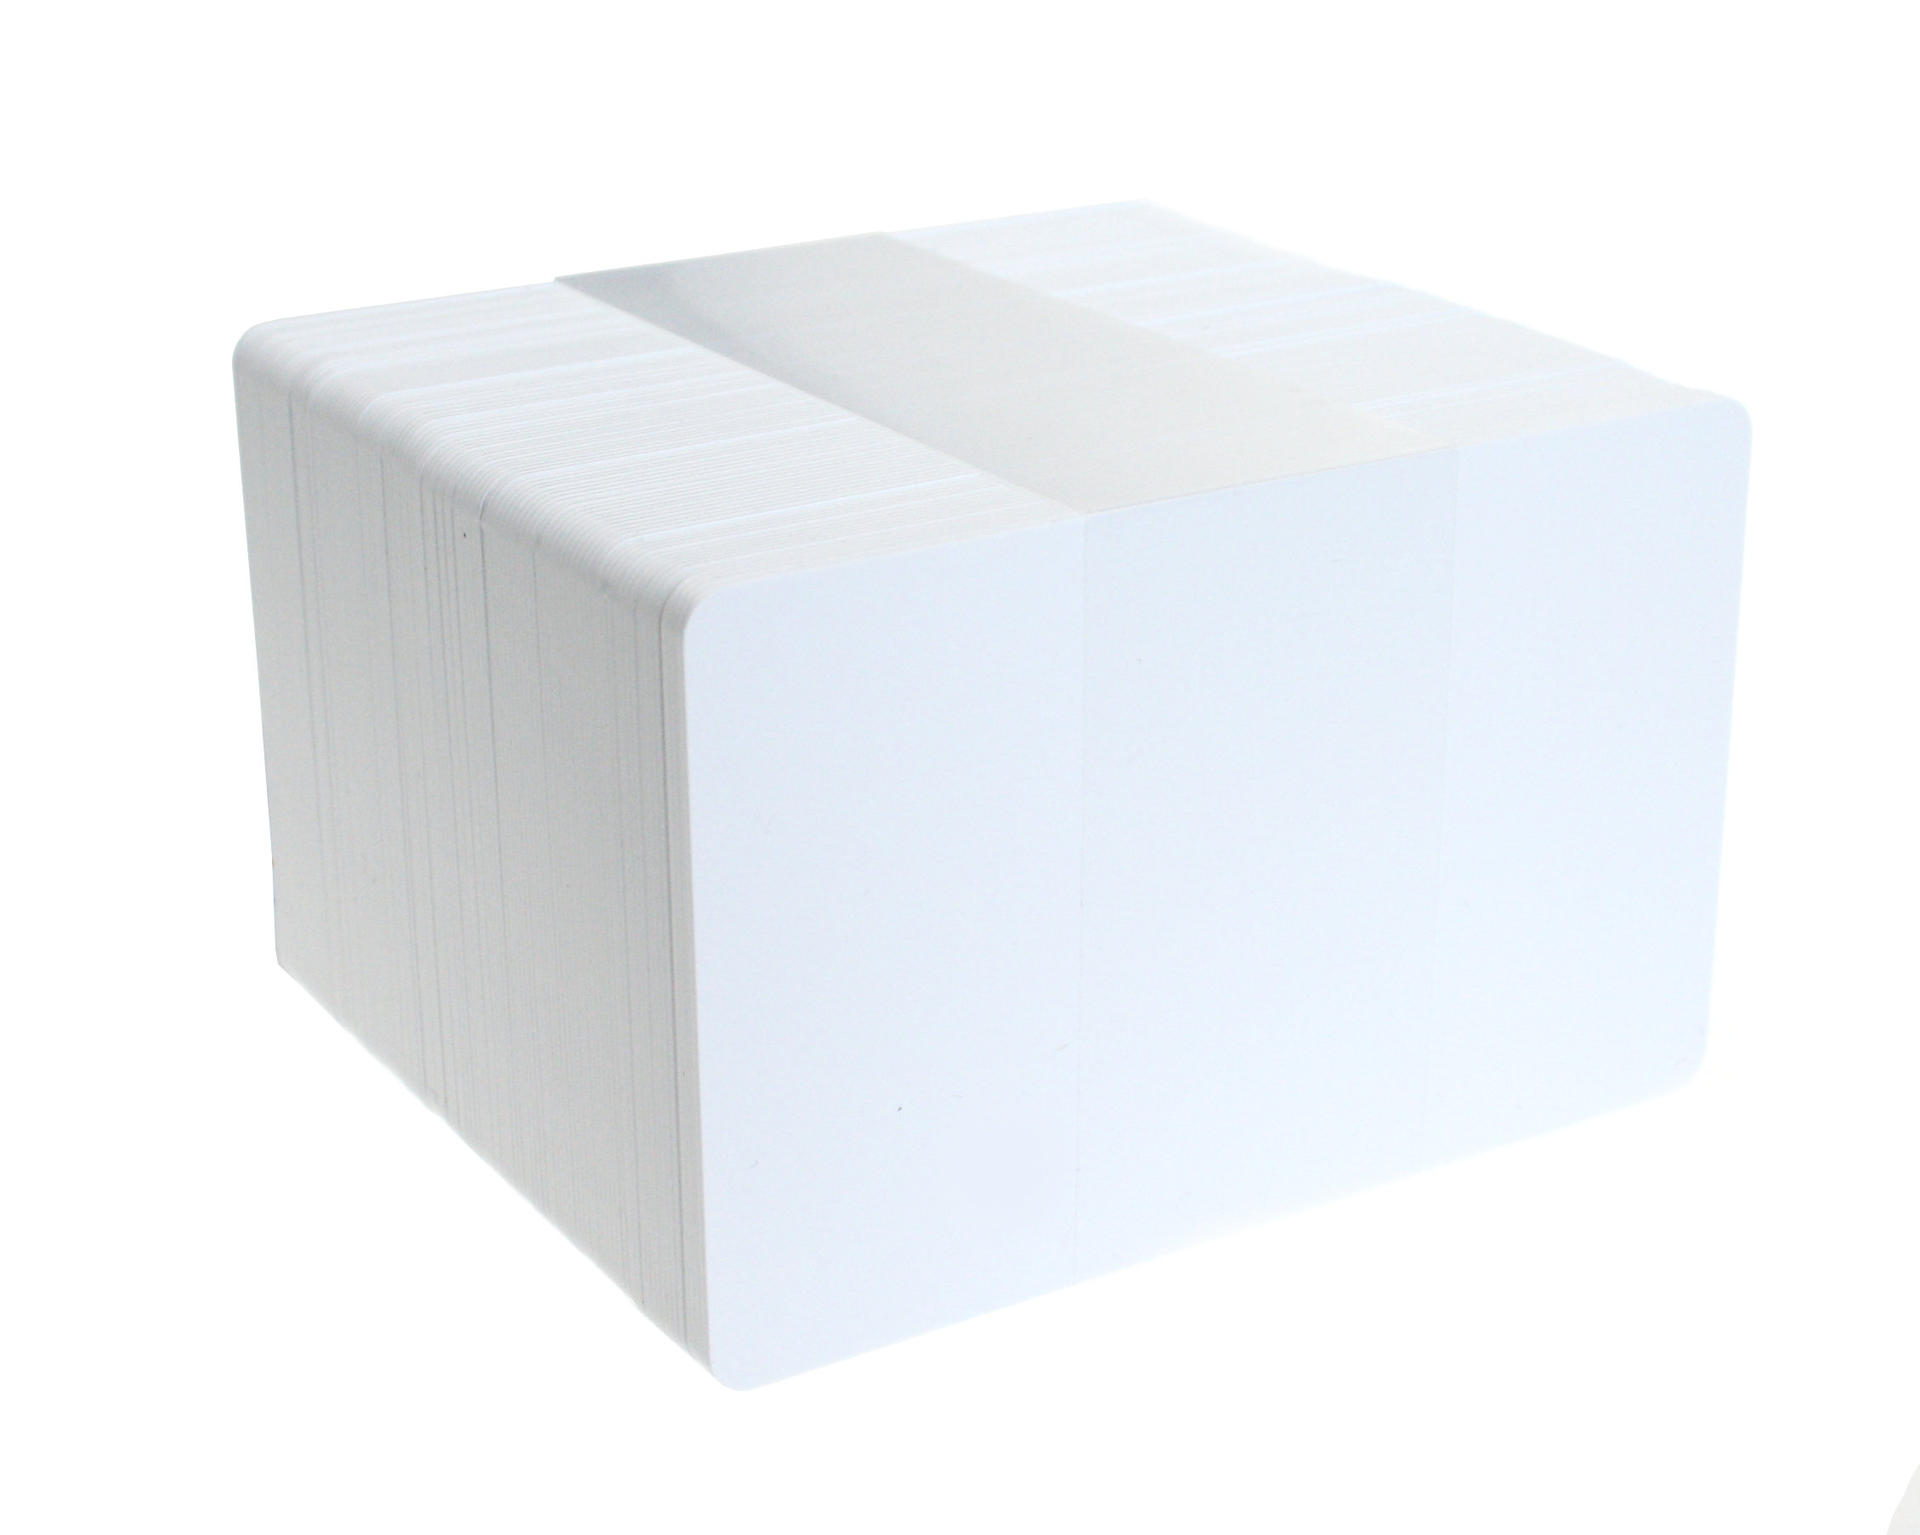 blank white biodegradable plastic cards pack of 100 c bio wh - Blank Plastic Cards